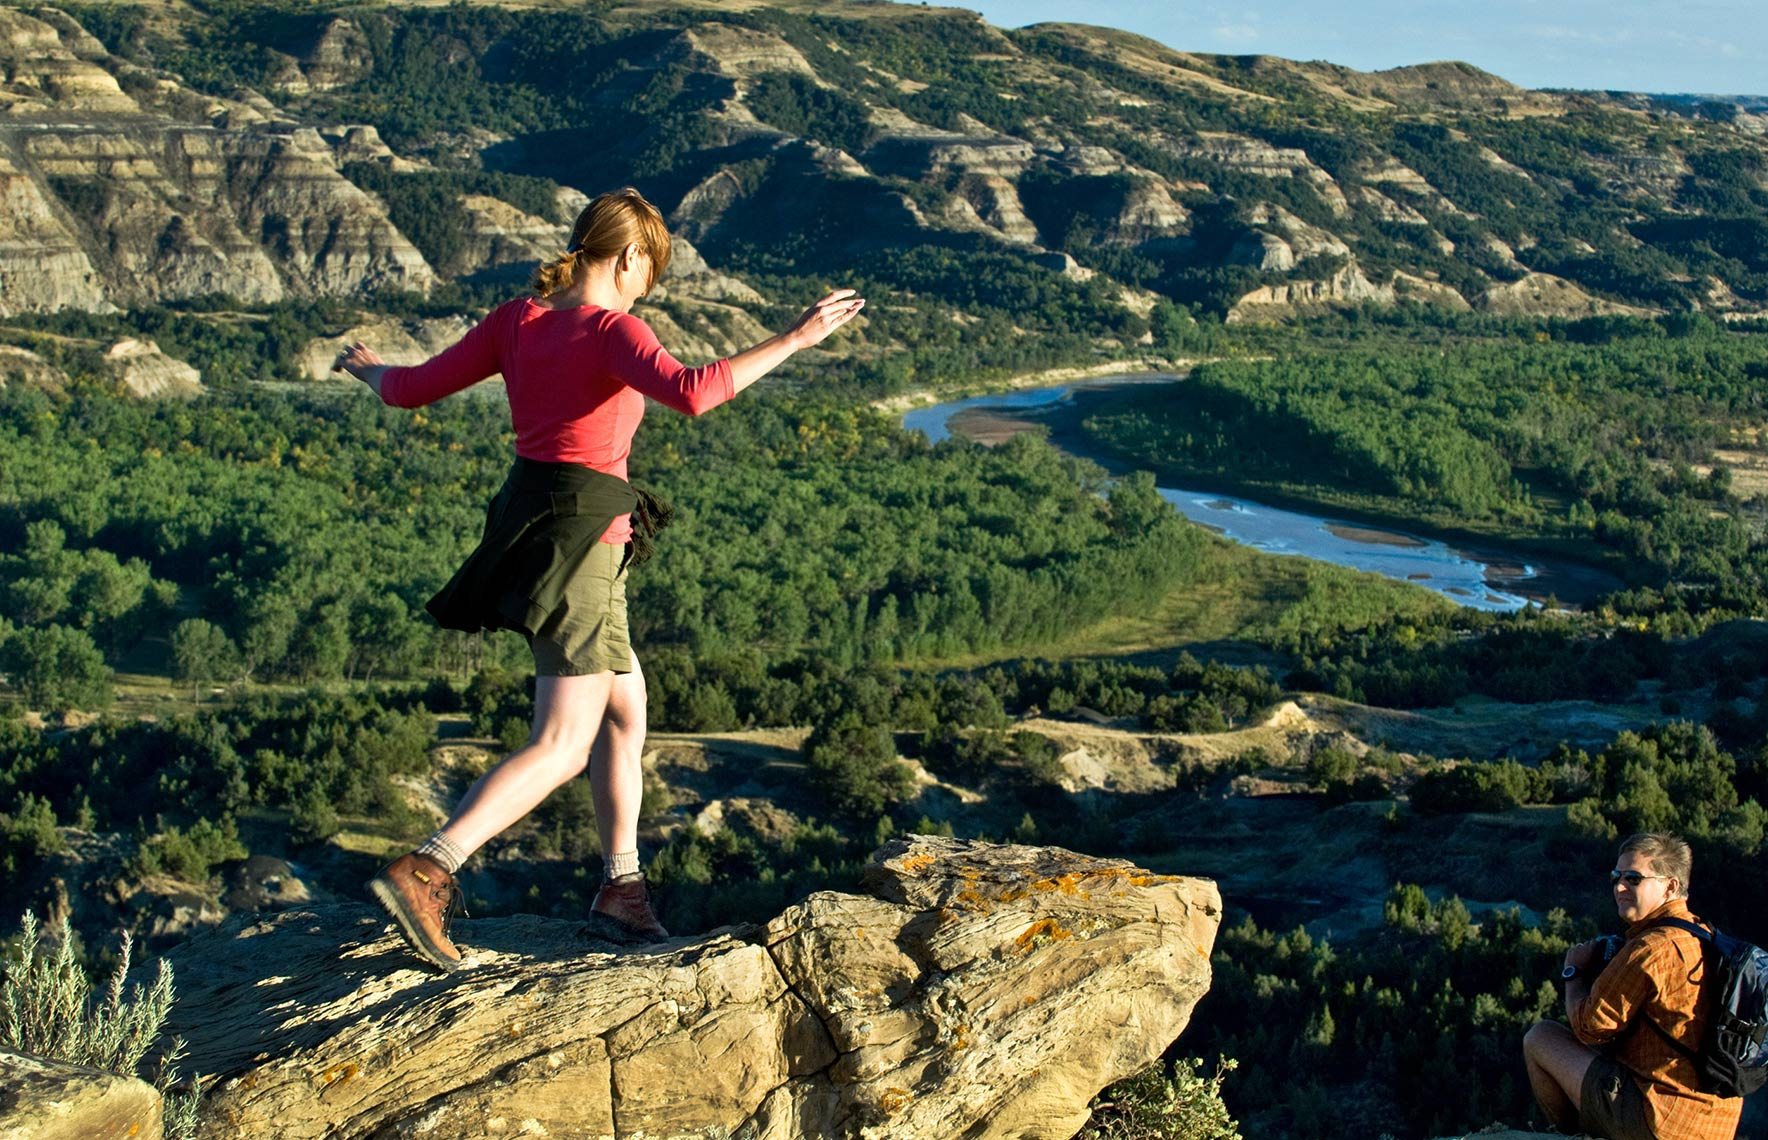 Photo of Theodore Roosevelt National Park by North Dakota photographer Dan Koeck